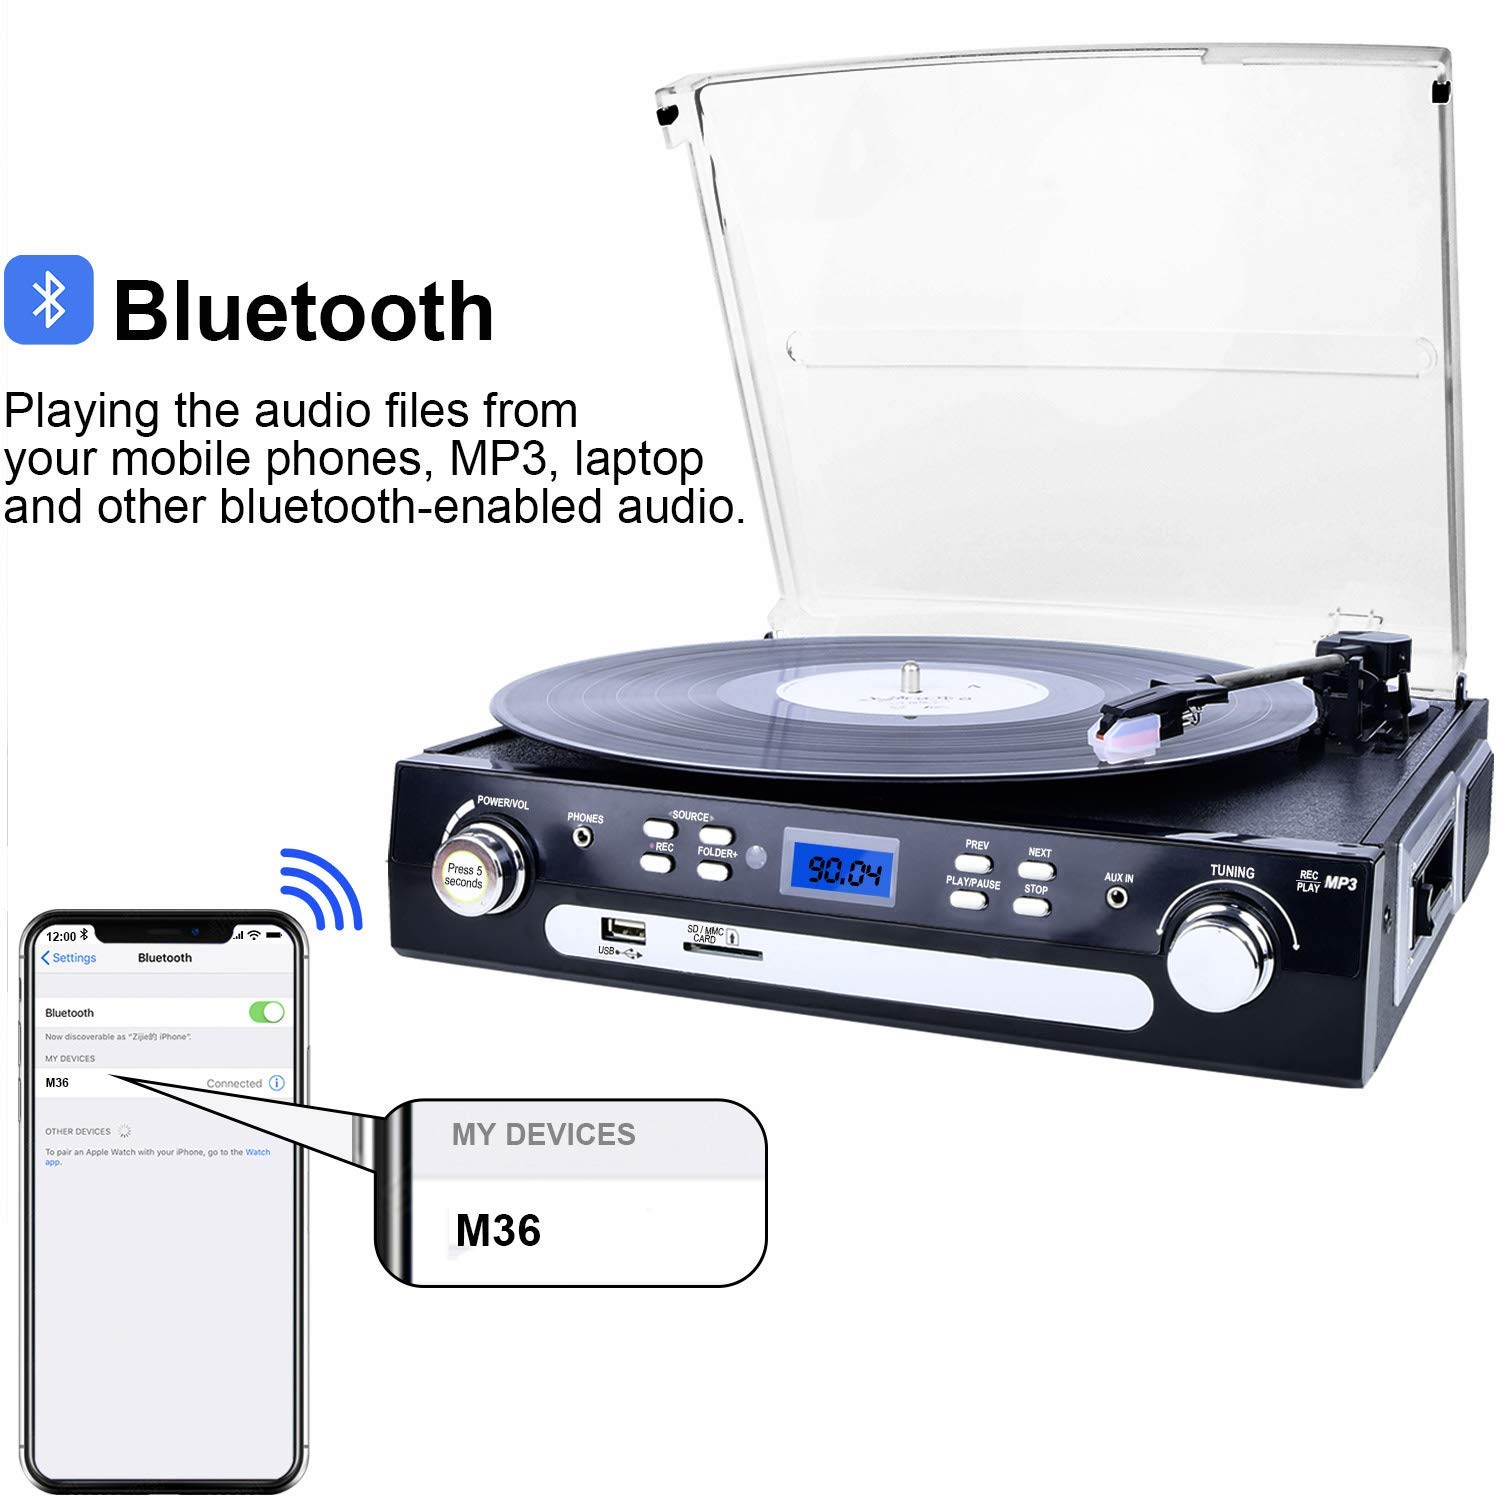 DIGITNOW Vinyl/LP Turntable Record Player, with Bluetooth,AM&FM Radio,  Cassette Tape, Aux in, USB/SD Encoding & Playing MP3/ Built-in Stereo  Speakers,